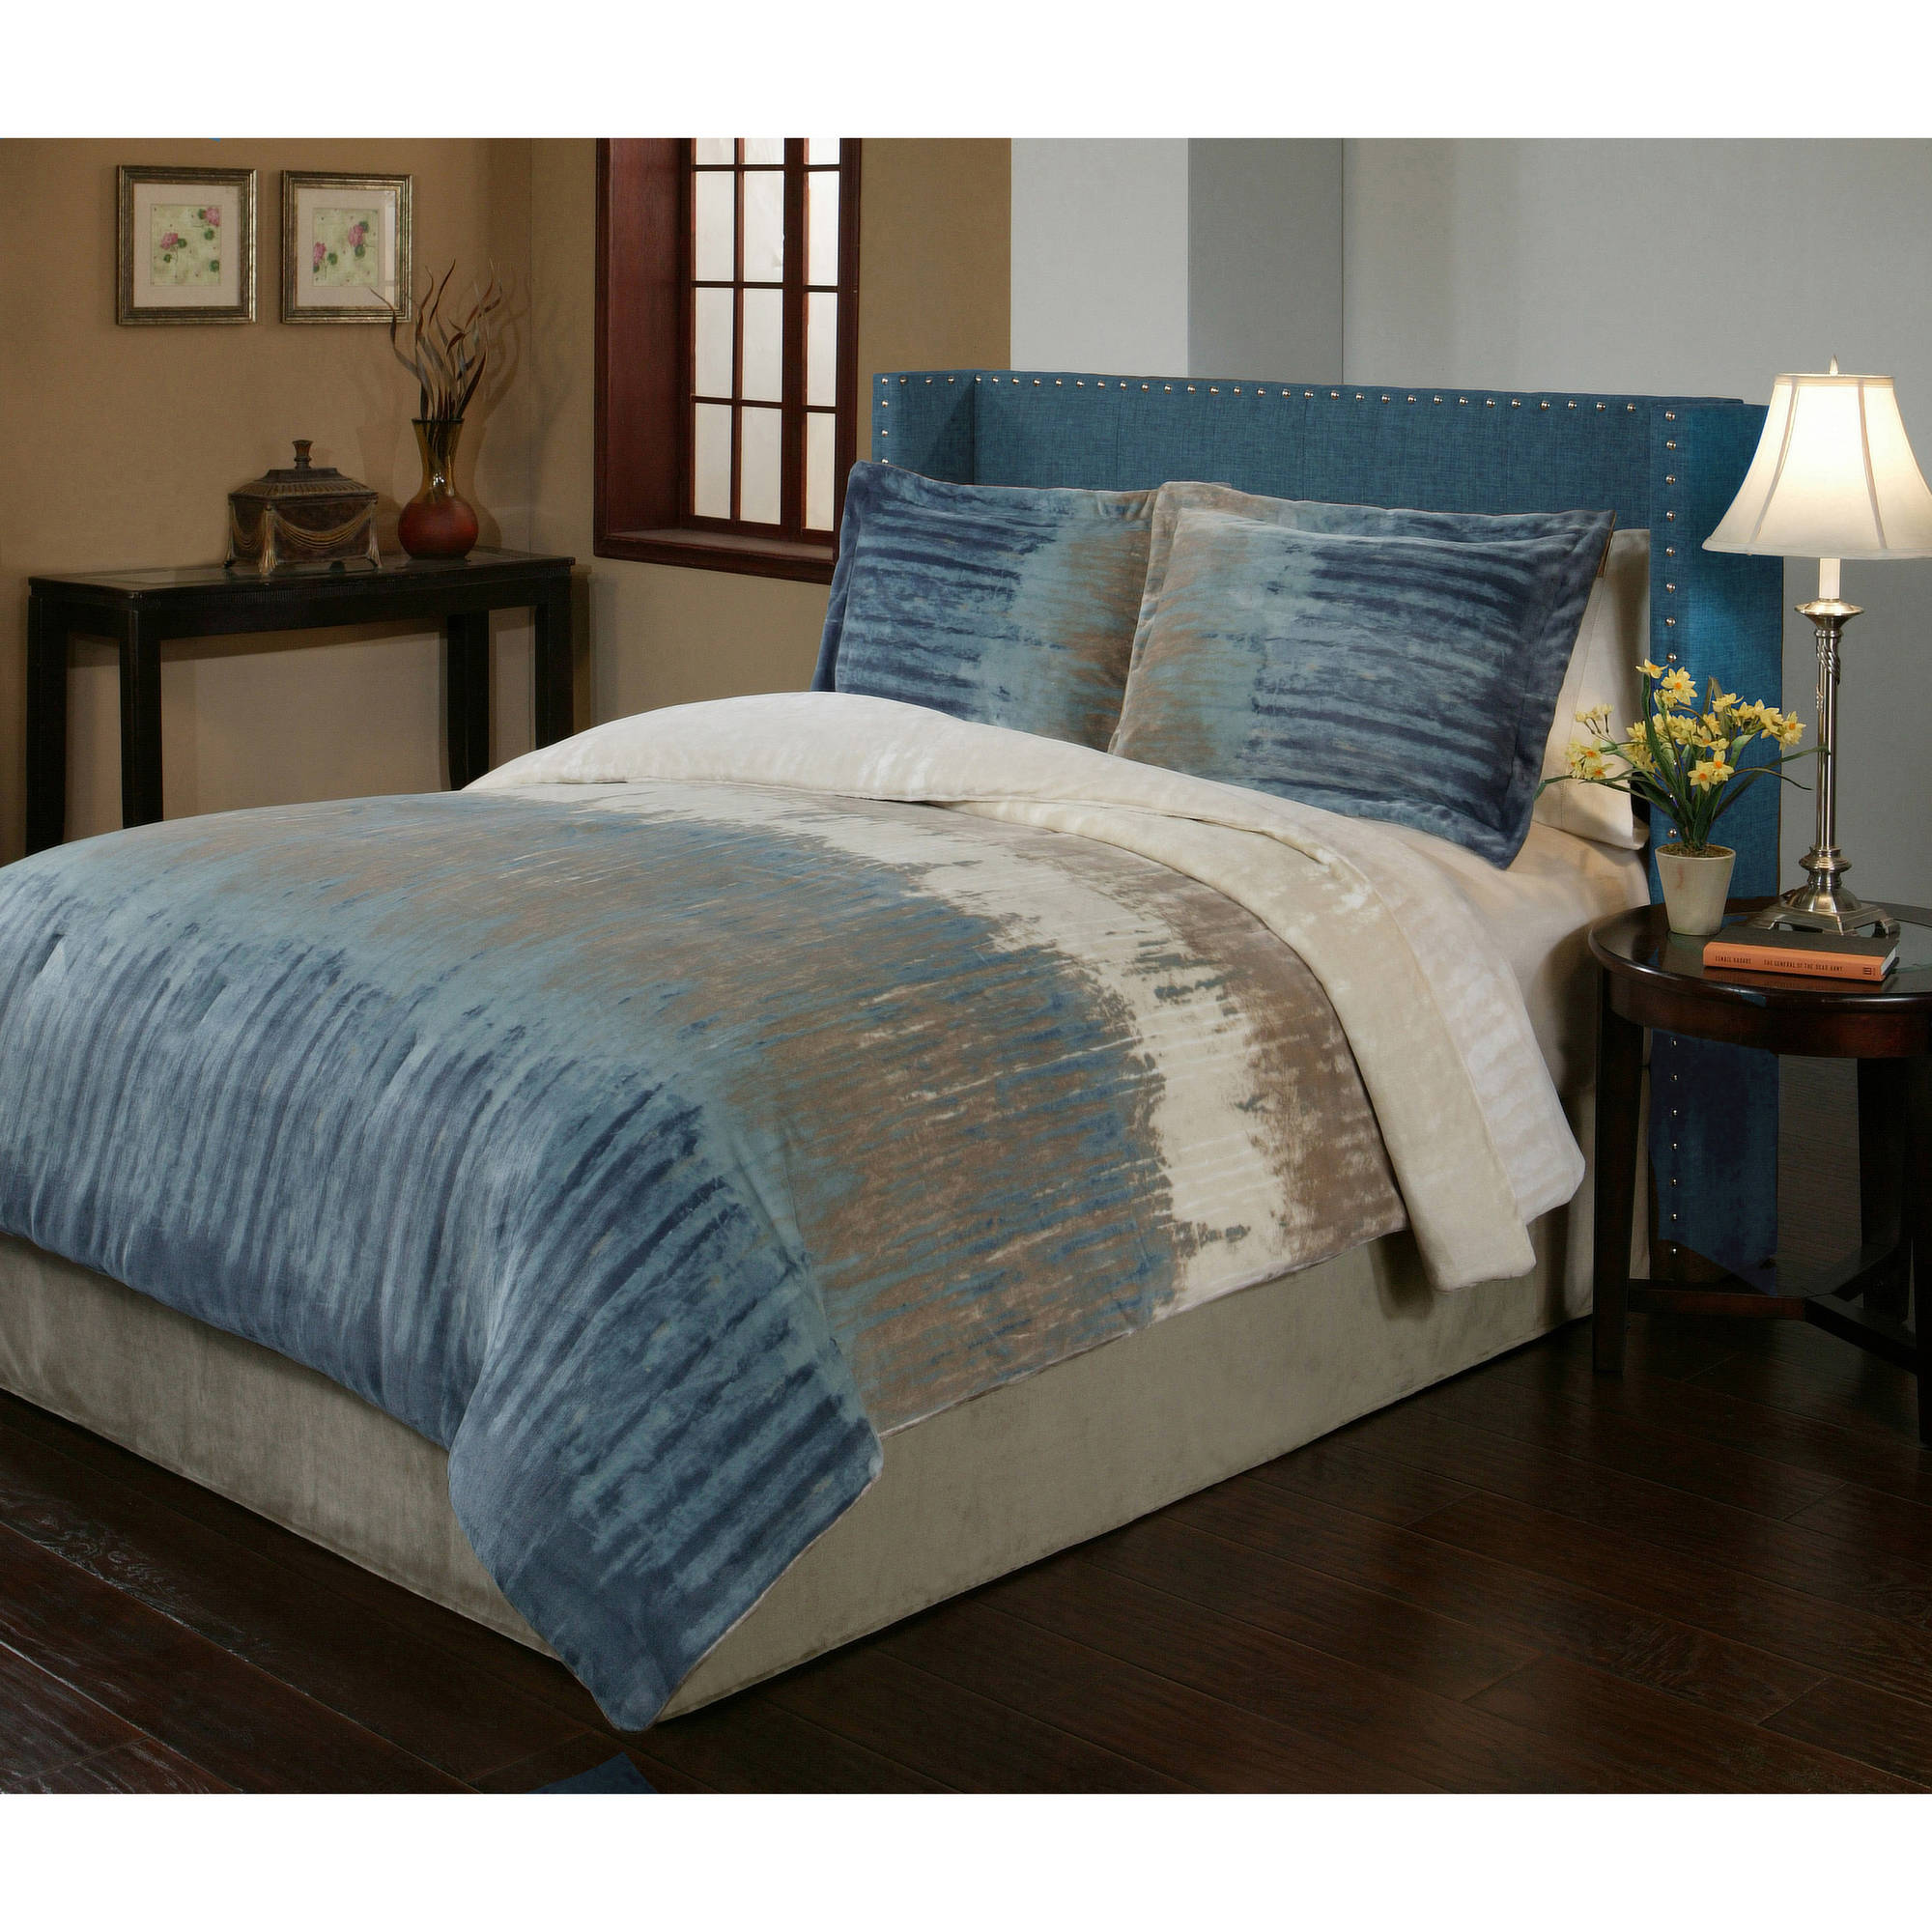 Bentley Velvet Plush Print Bedding Comforter Mini Set by Sun Yin